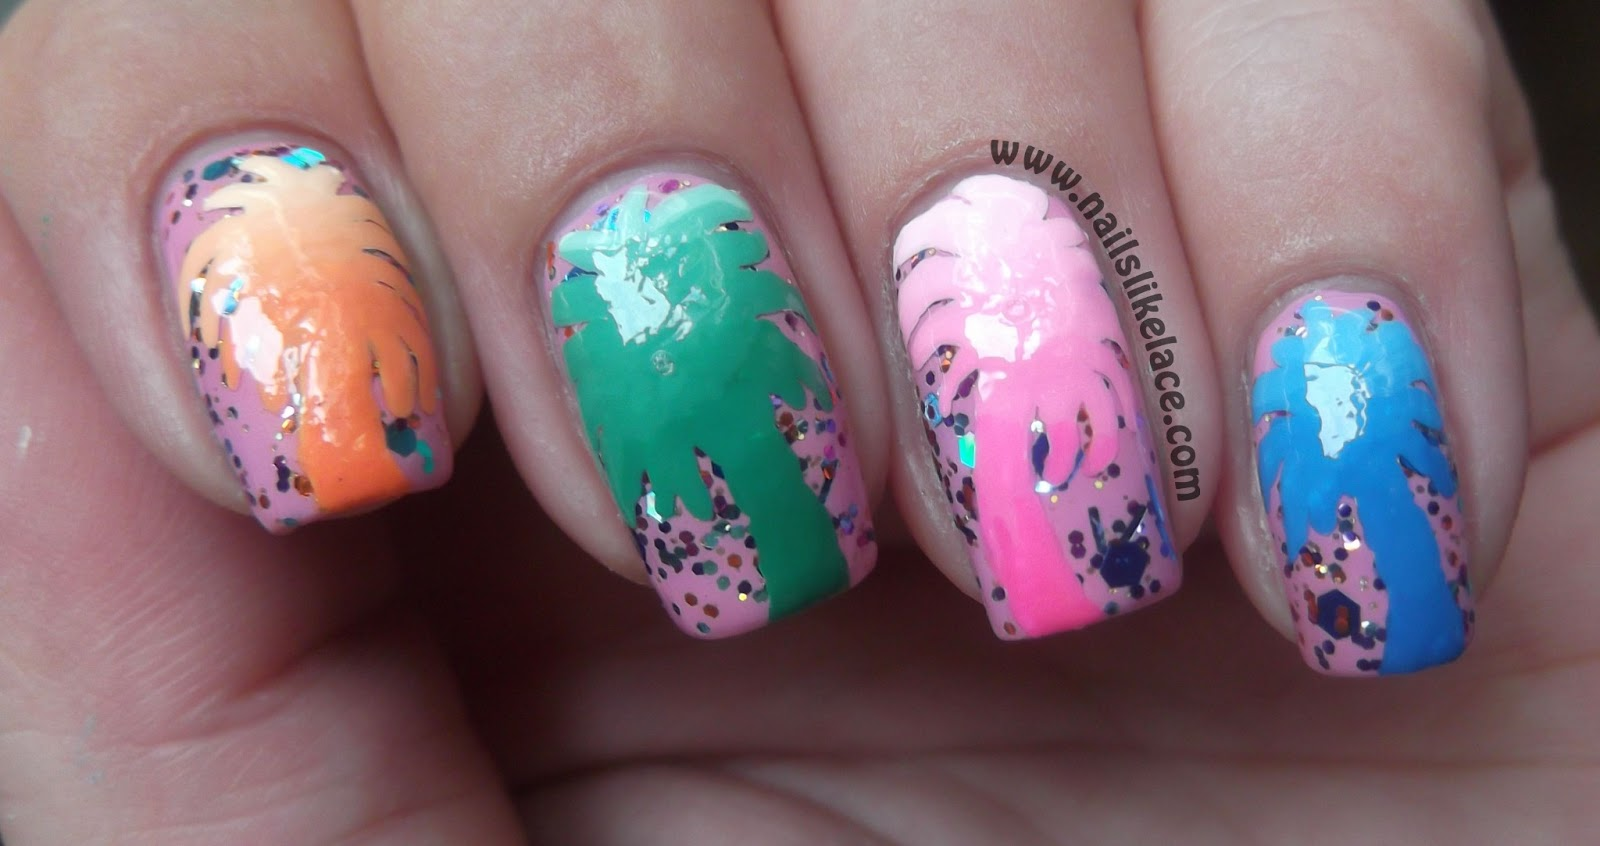 NailsLikeLace: Gradient Palm Tree Nails